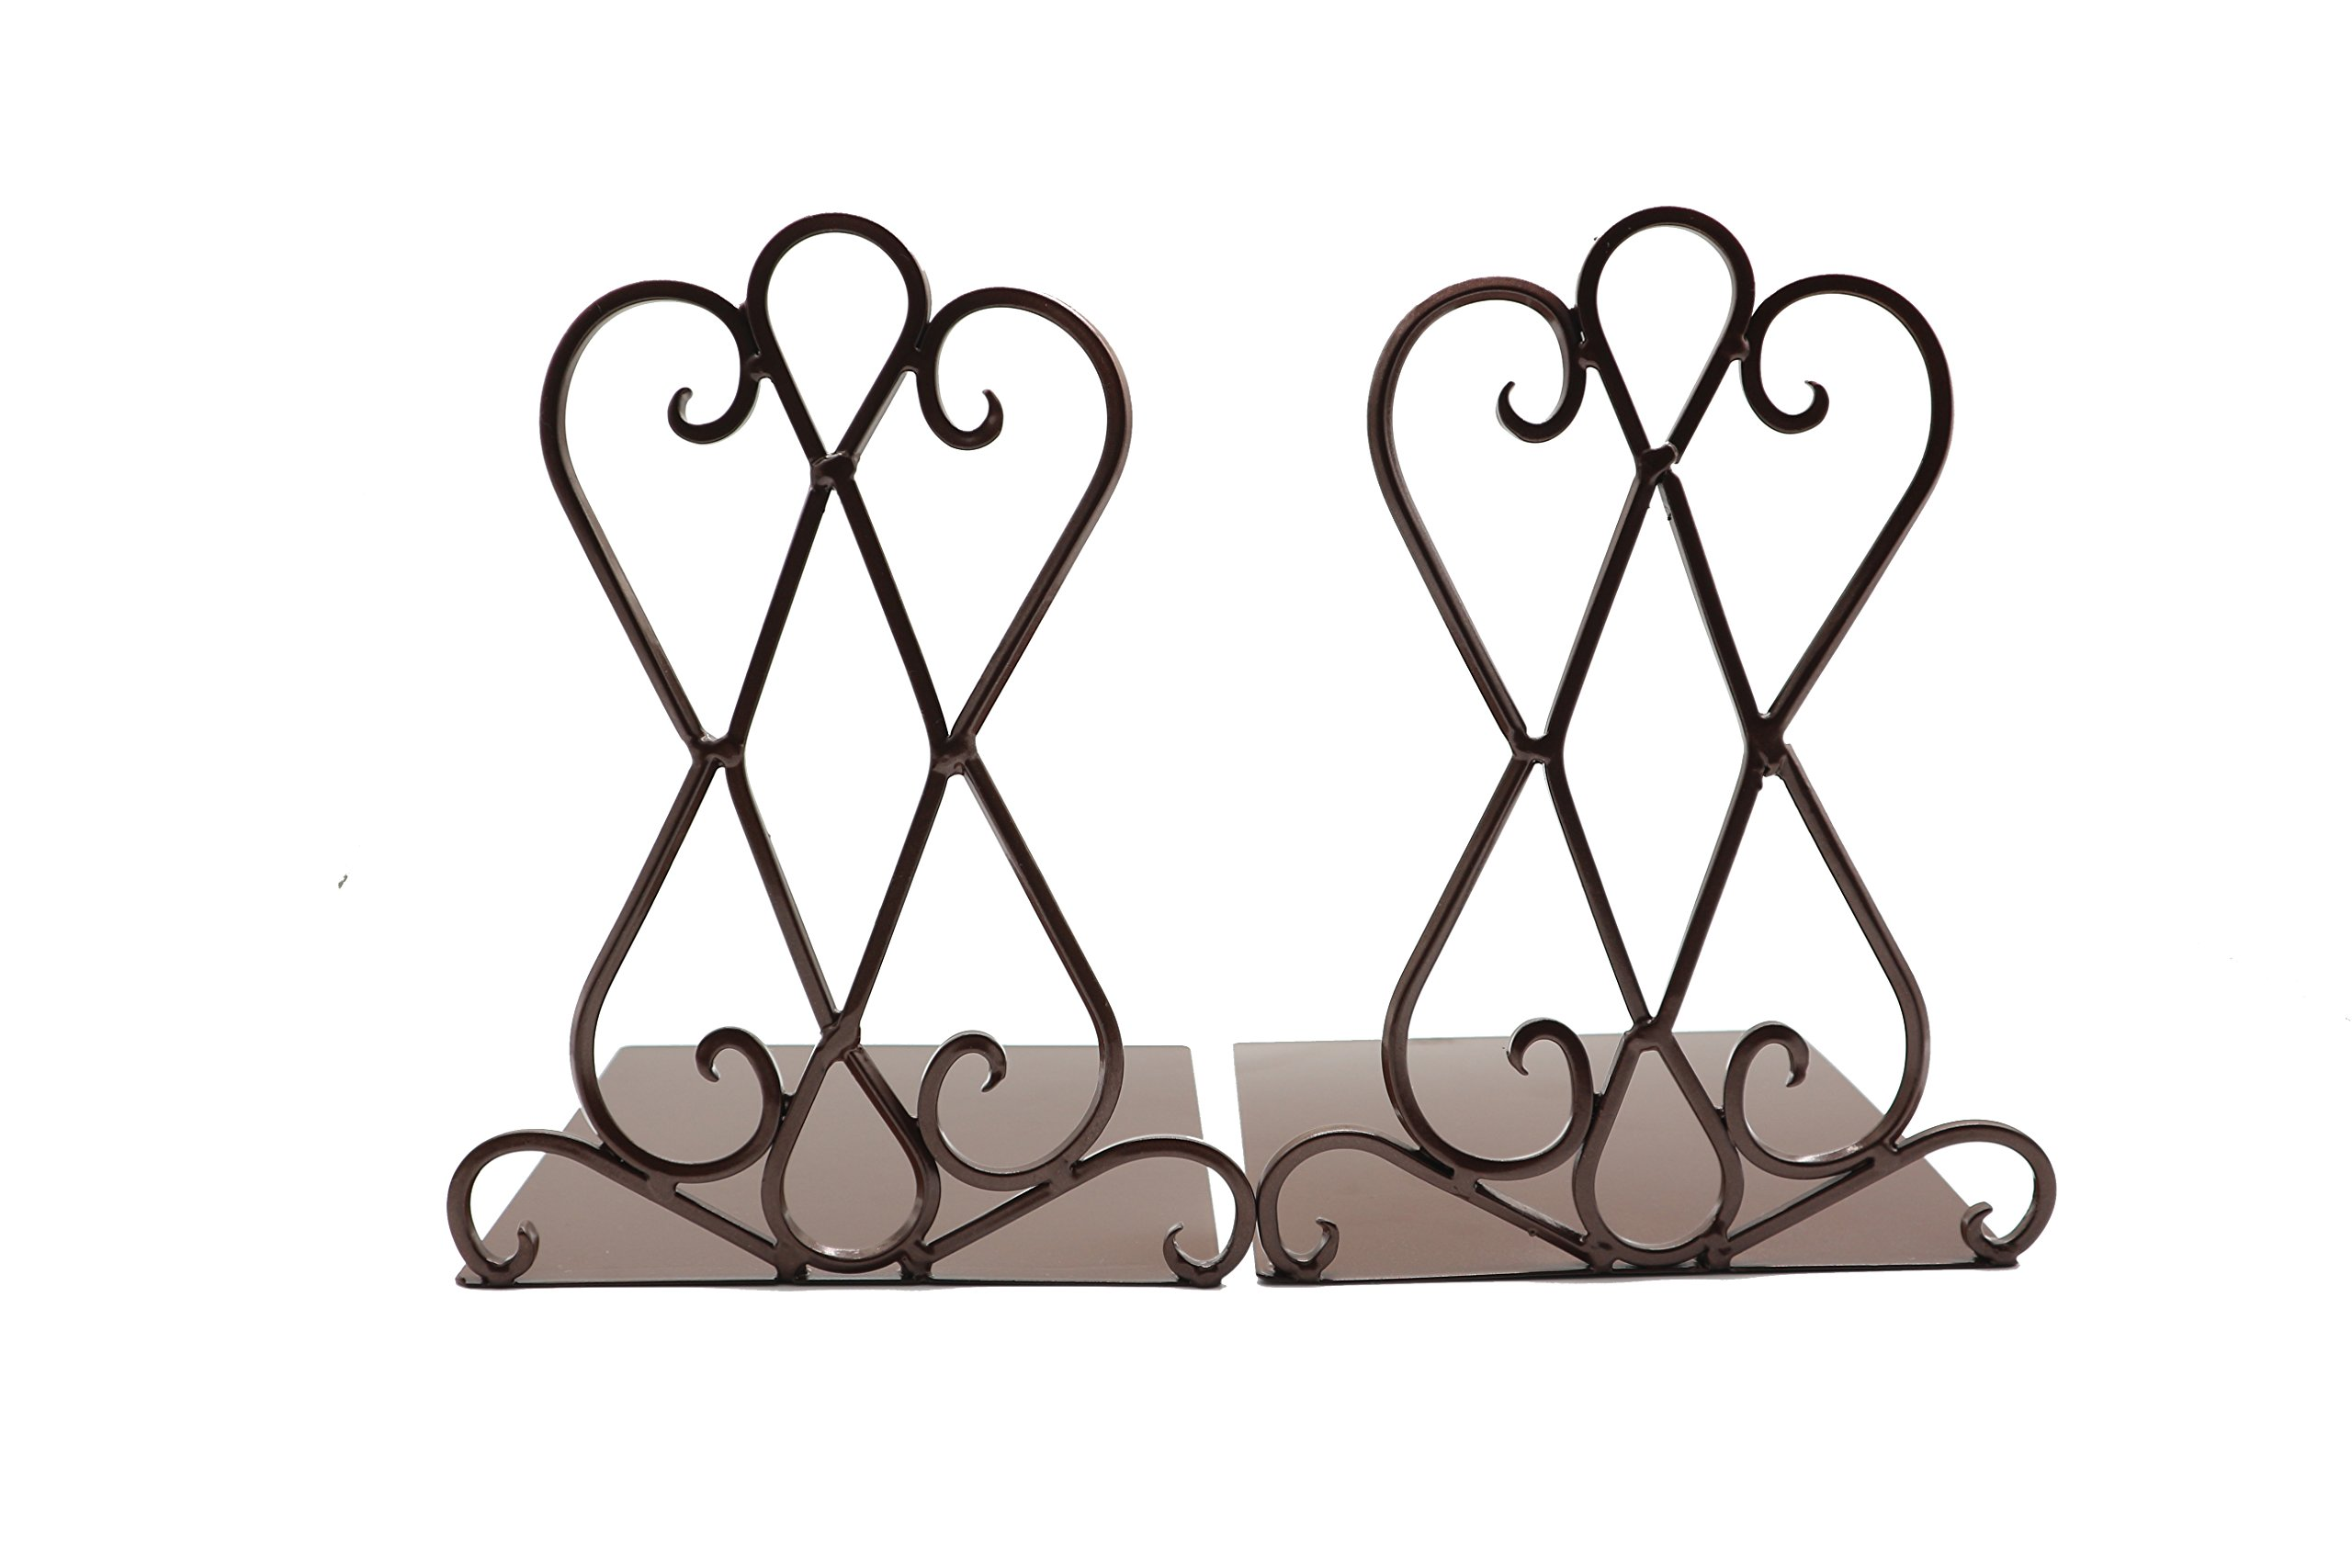 Y-H Vintage Retro Art Iron Bookend Shelf Book End Bookend Home Office School Decoration,1pair (Brown)